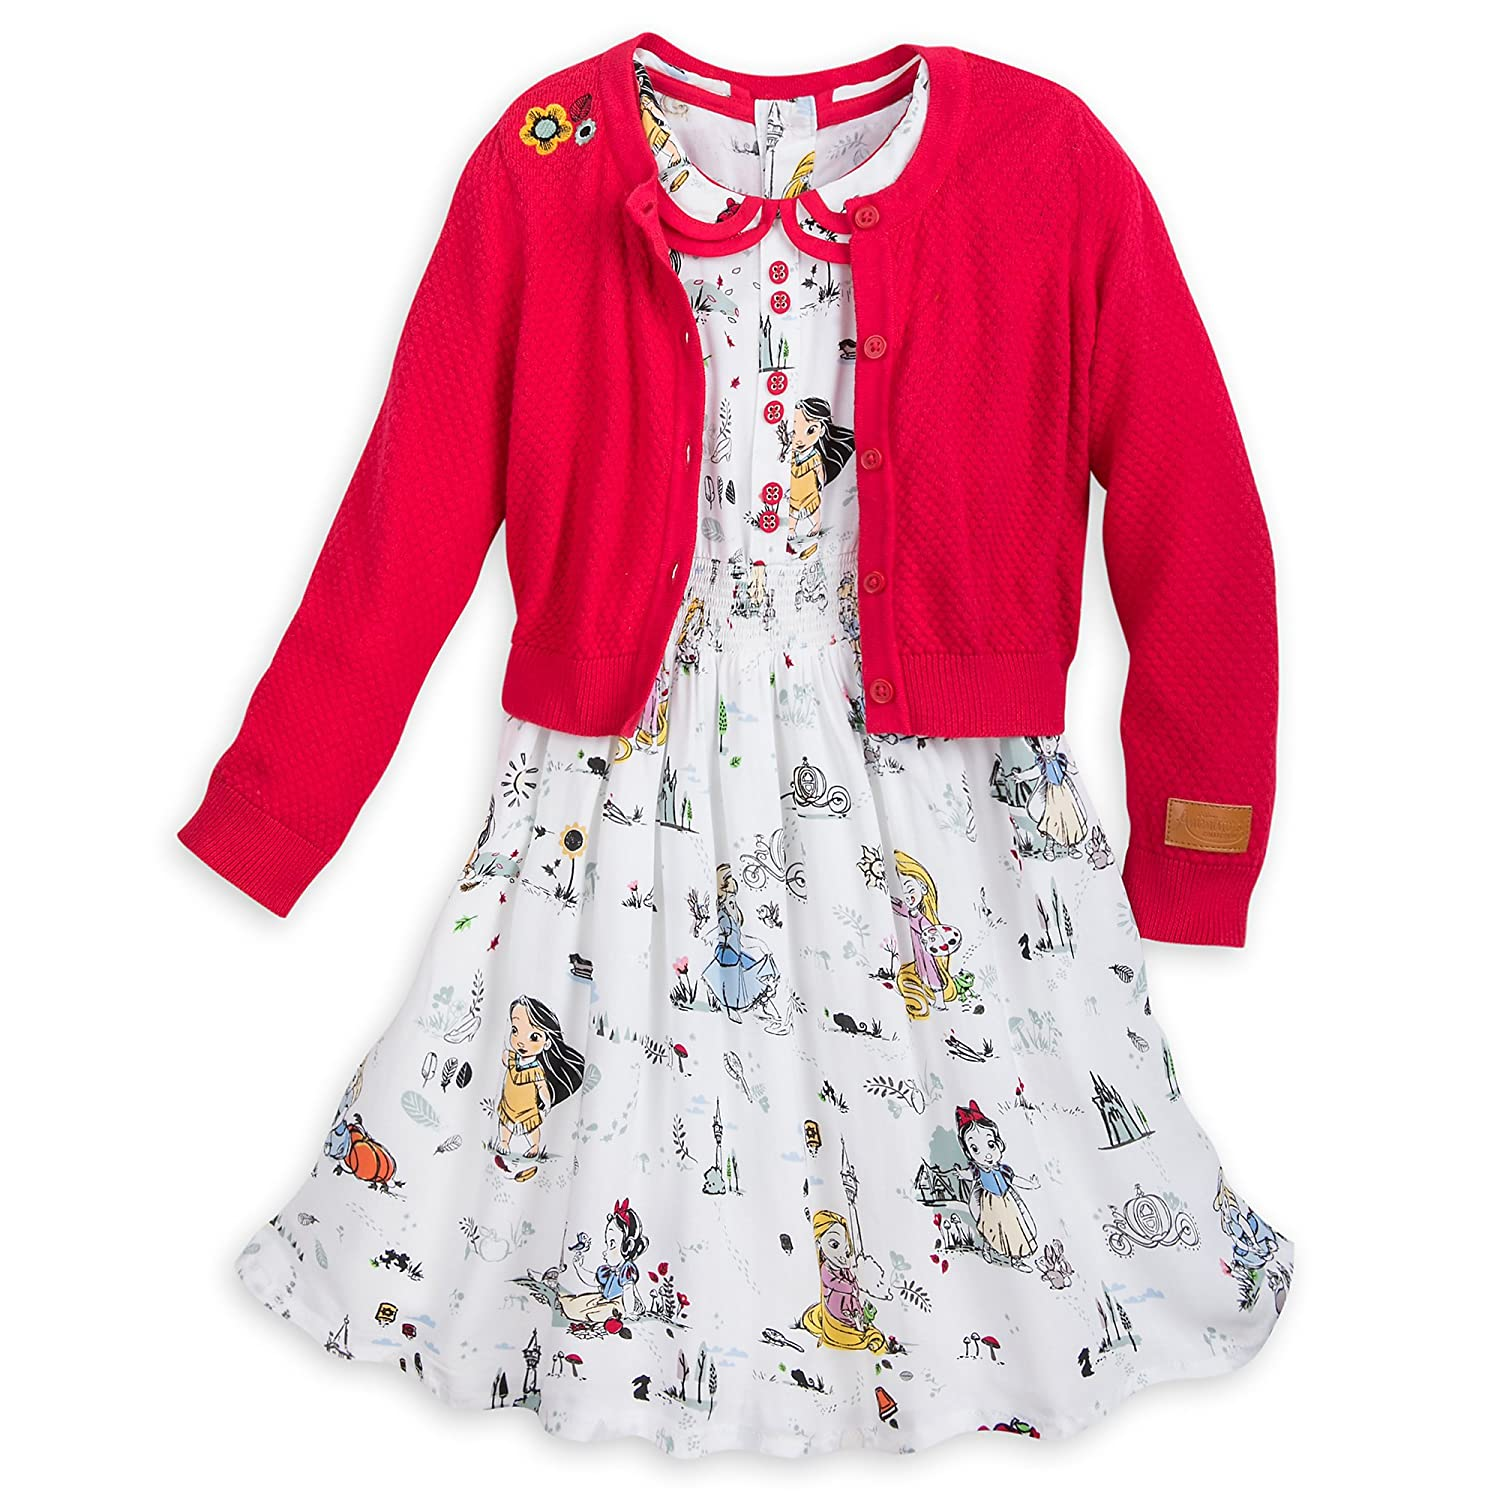 Disney Animators' Collection Dress Set for Girls Multi